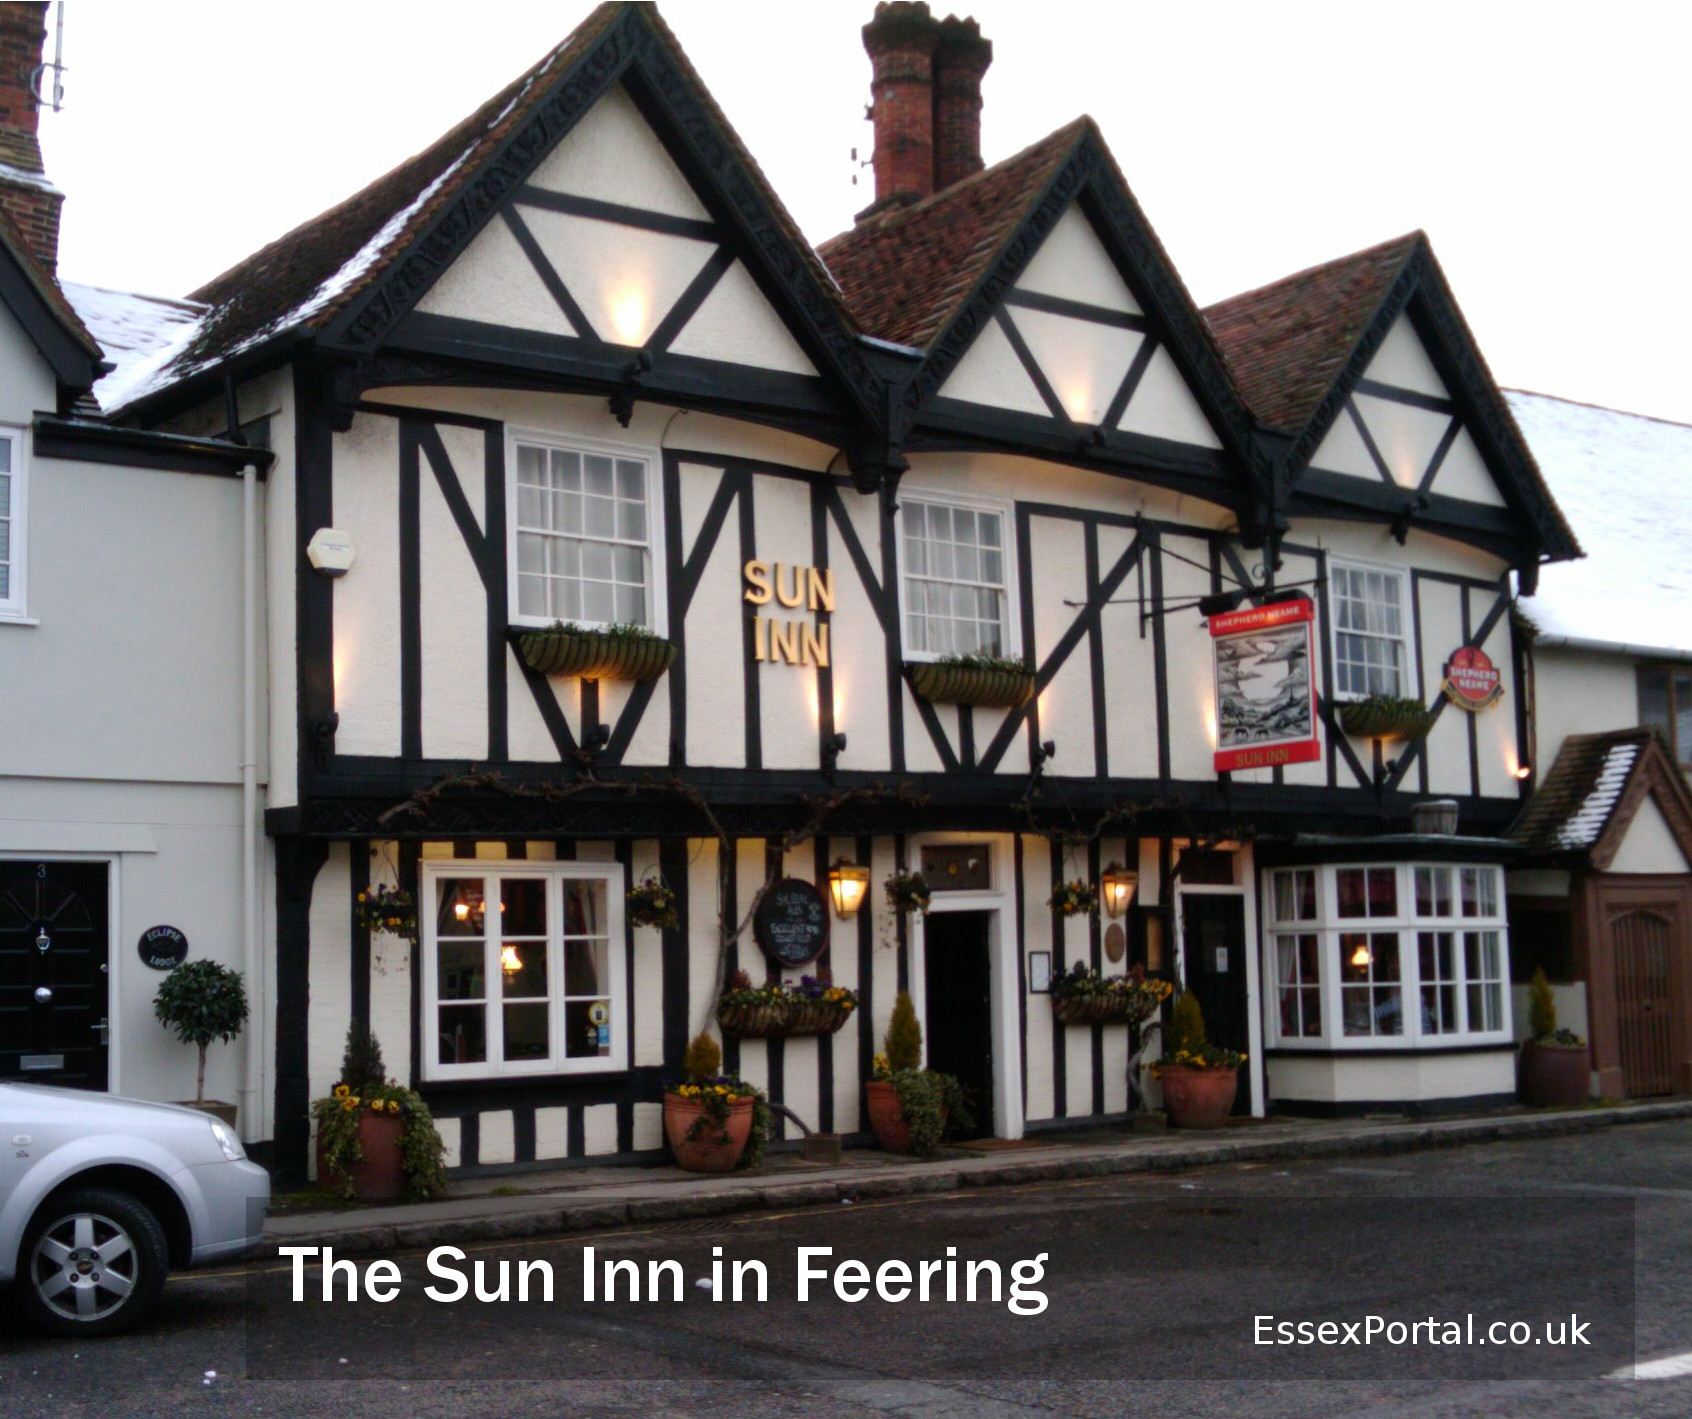 The Sun Inn in Feering